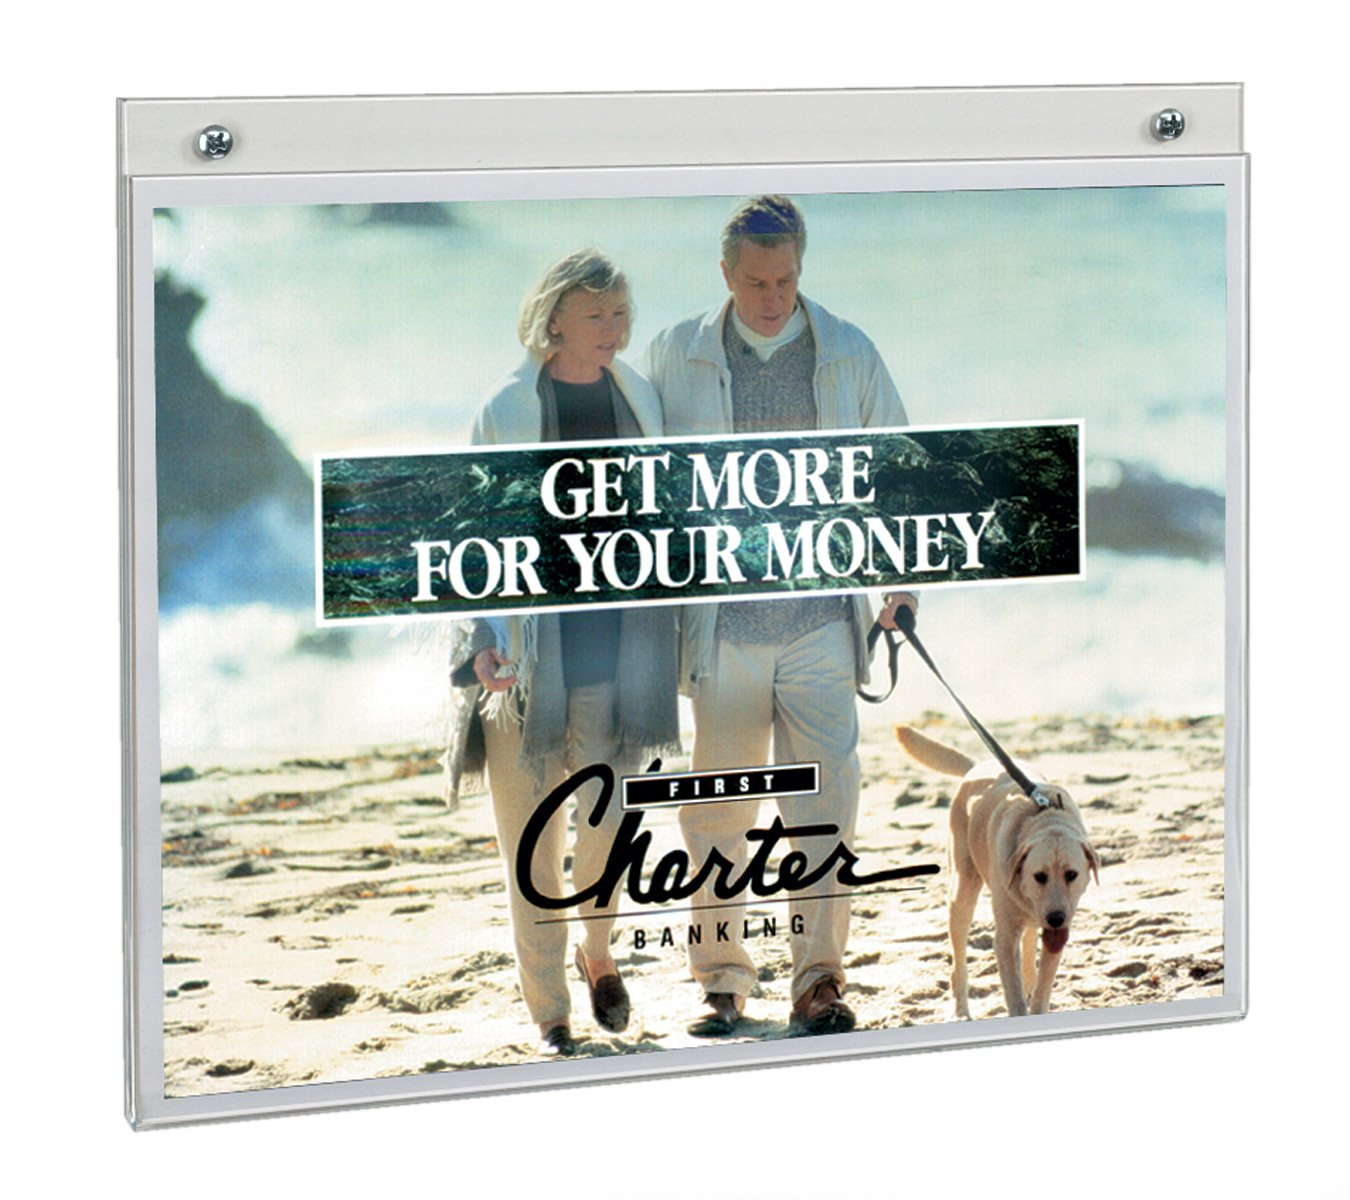 Displays2go Clear Acrylic 11 X 8.5 Wall Mount Sign Holders, 10 Pack (FL1185)